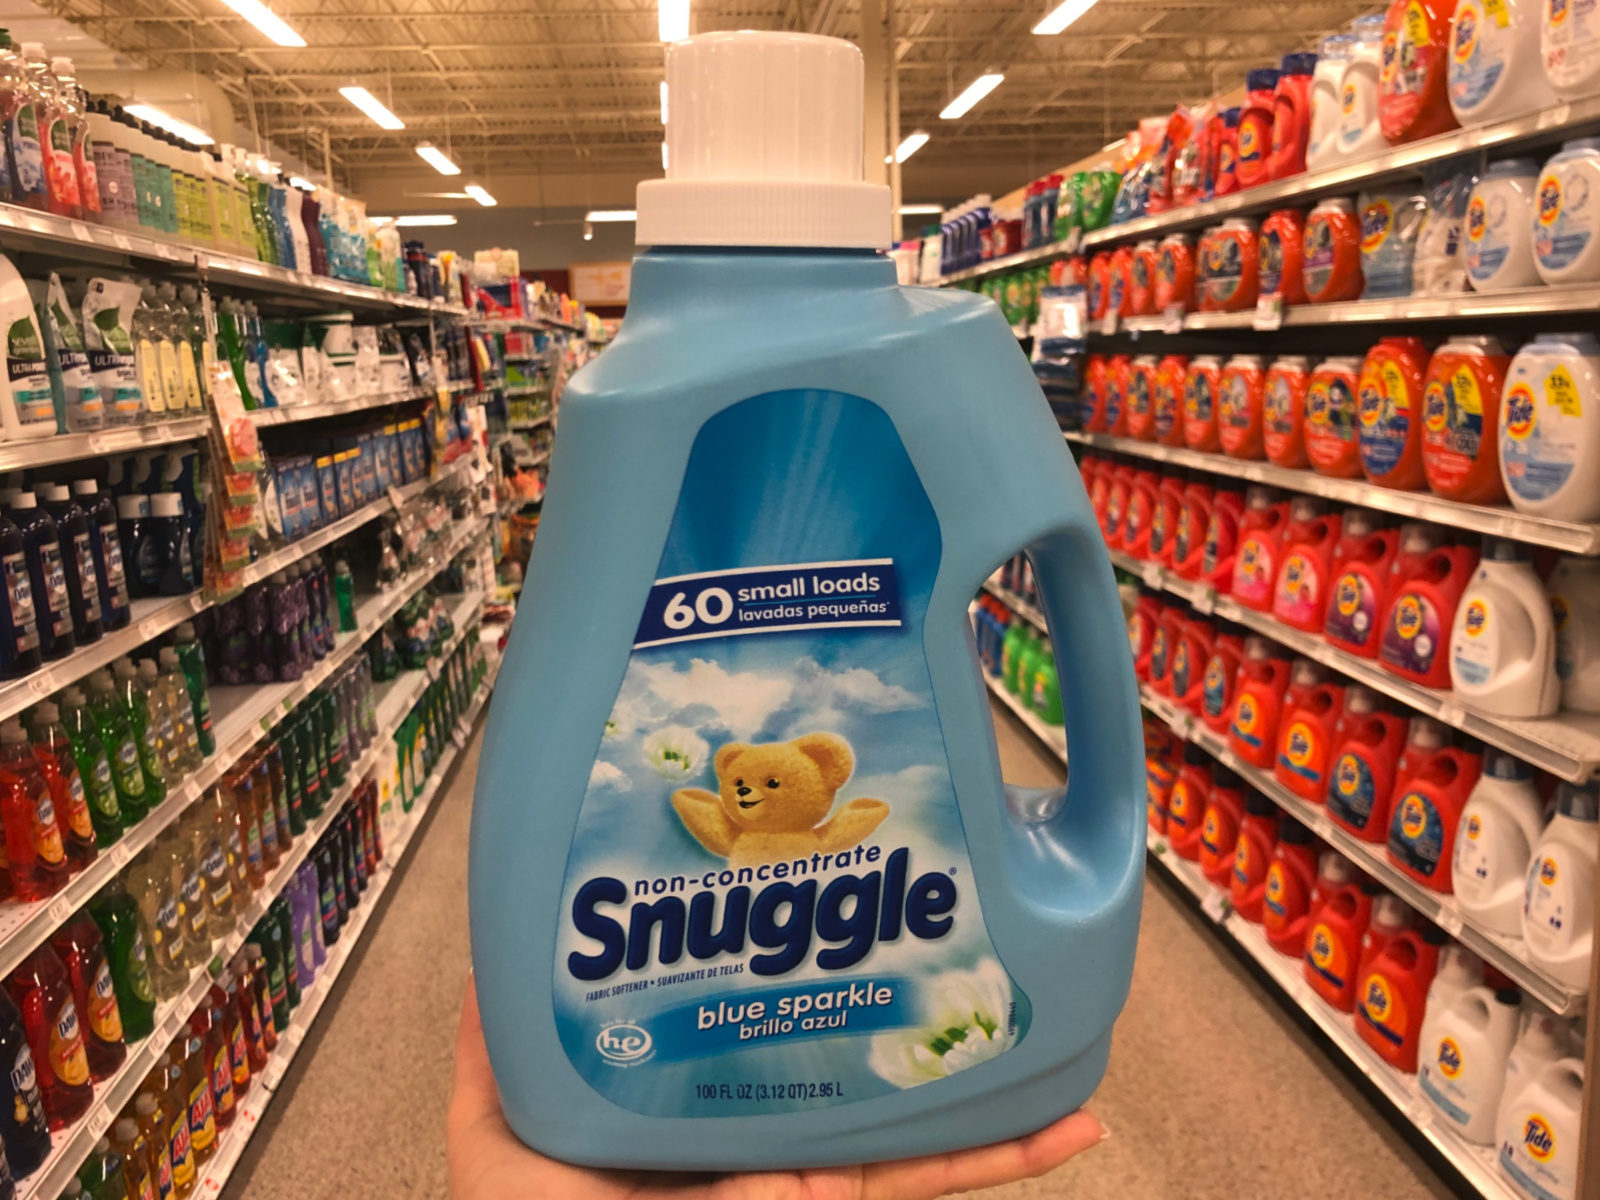 Snuggle Products Only $1 At Publix on I Heart Publix 4